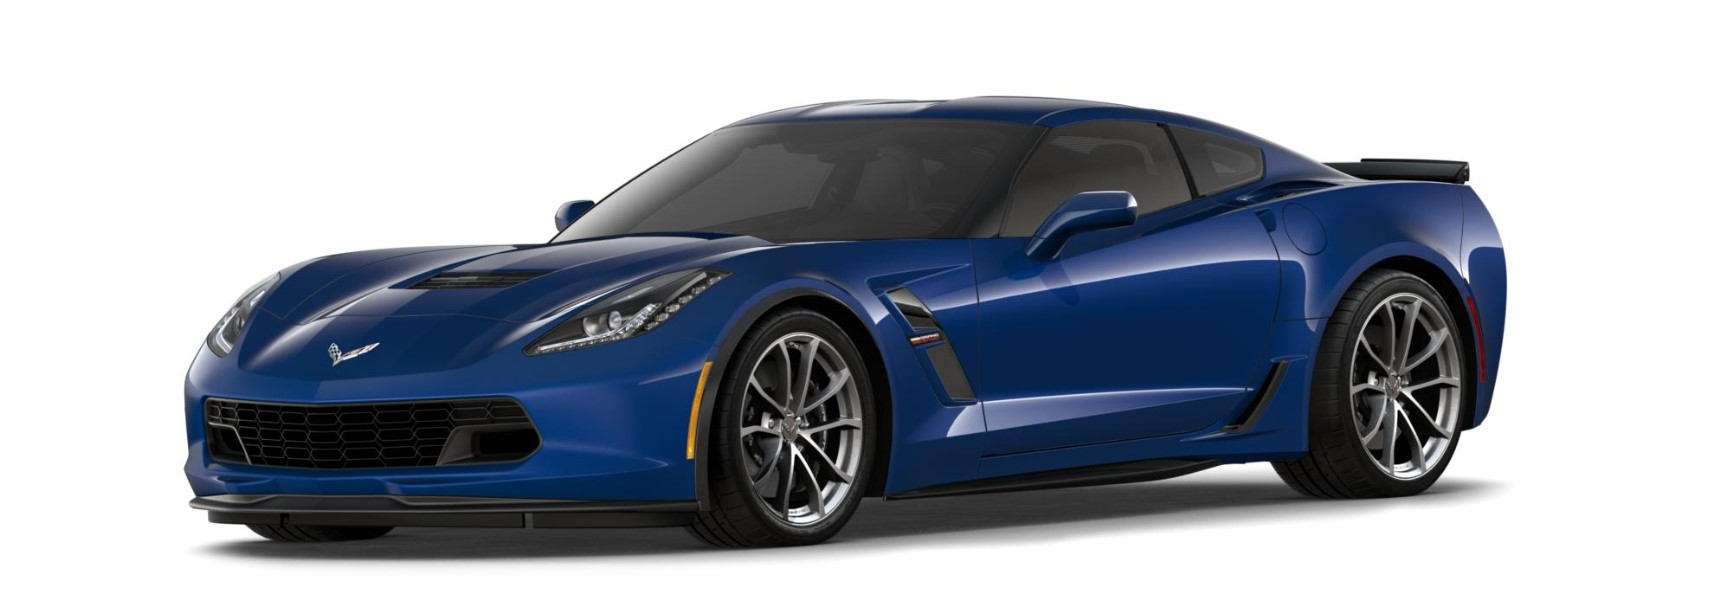 2018 Chevrolet Corvette Grand Sport Blue Front Exterior